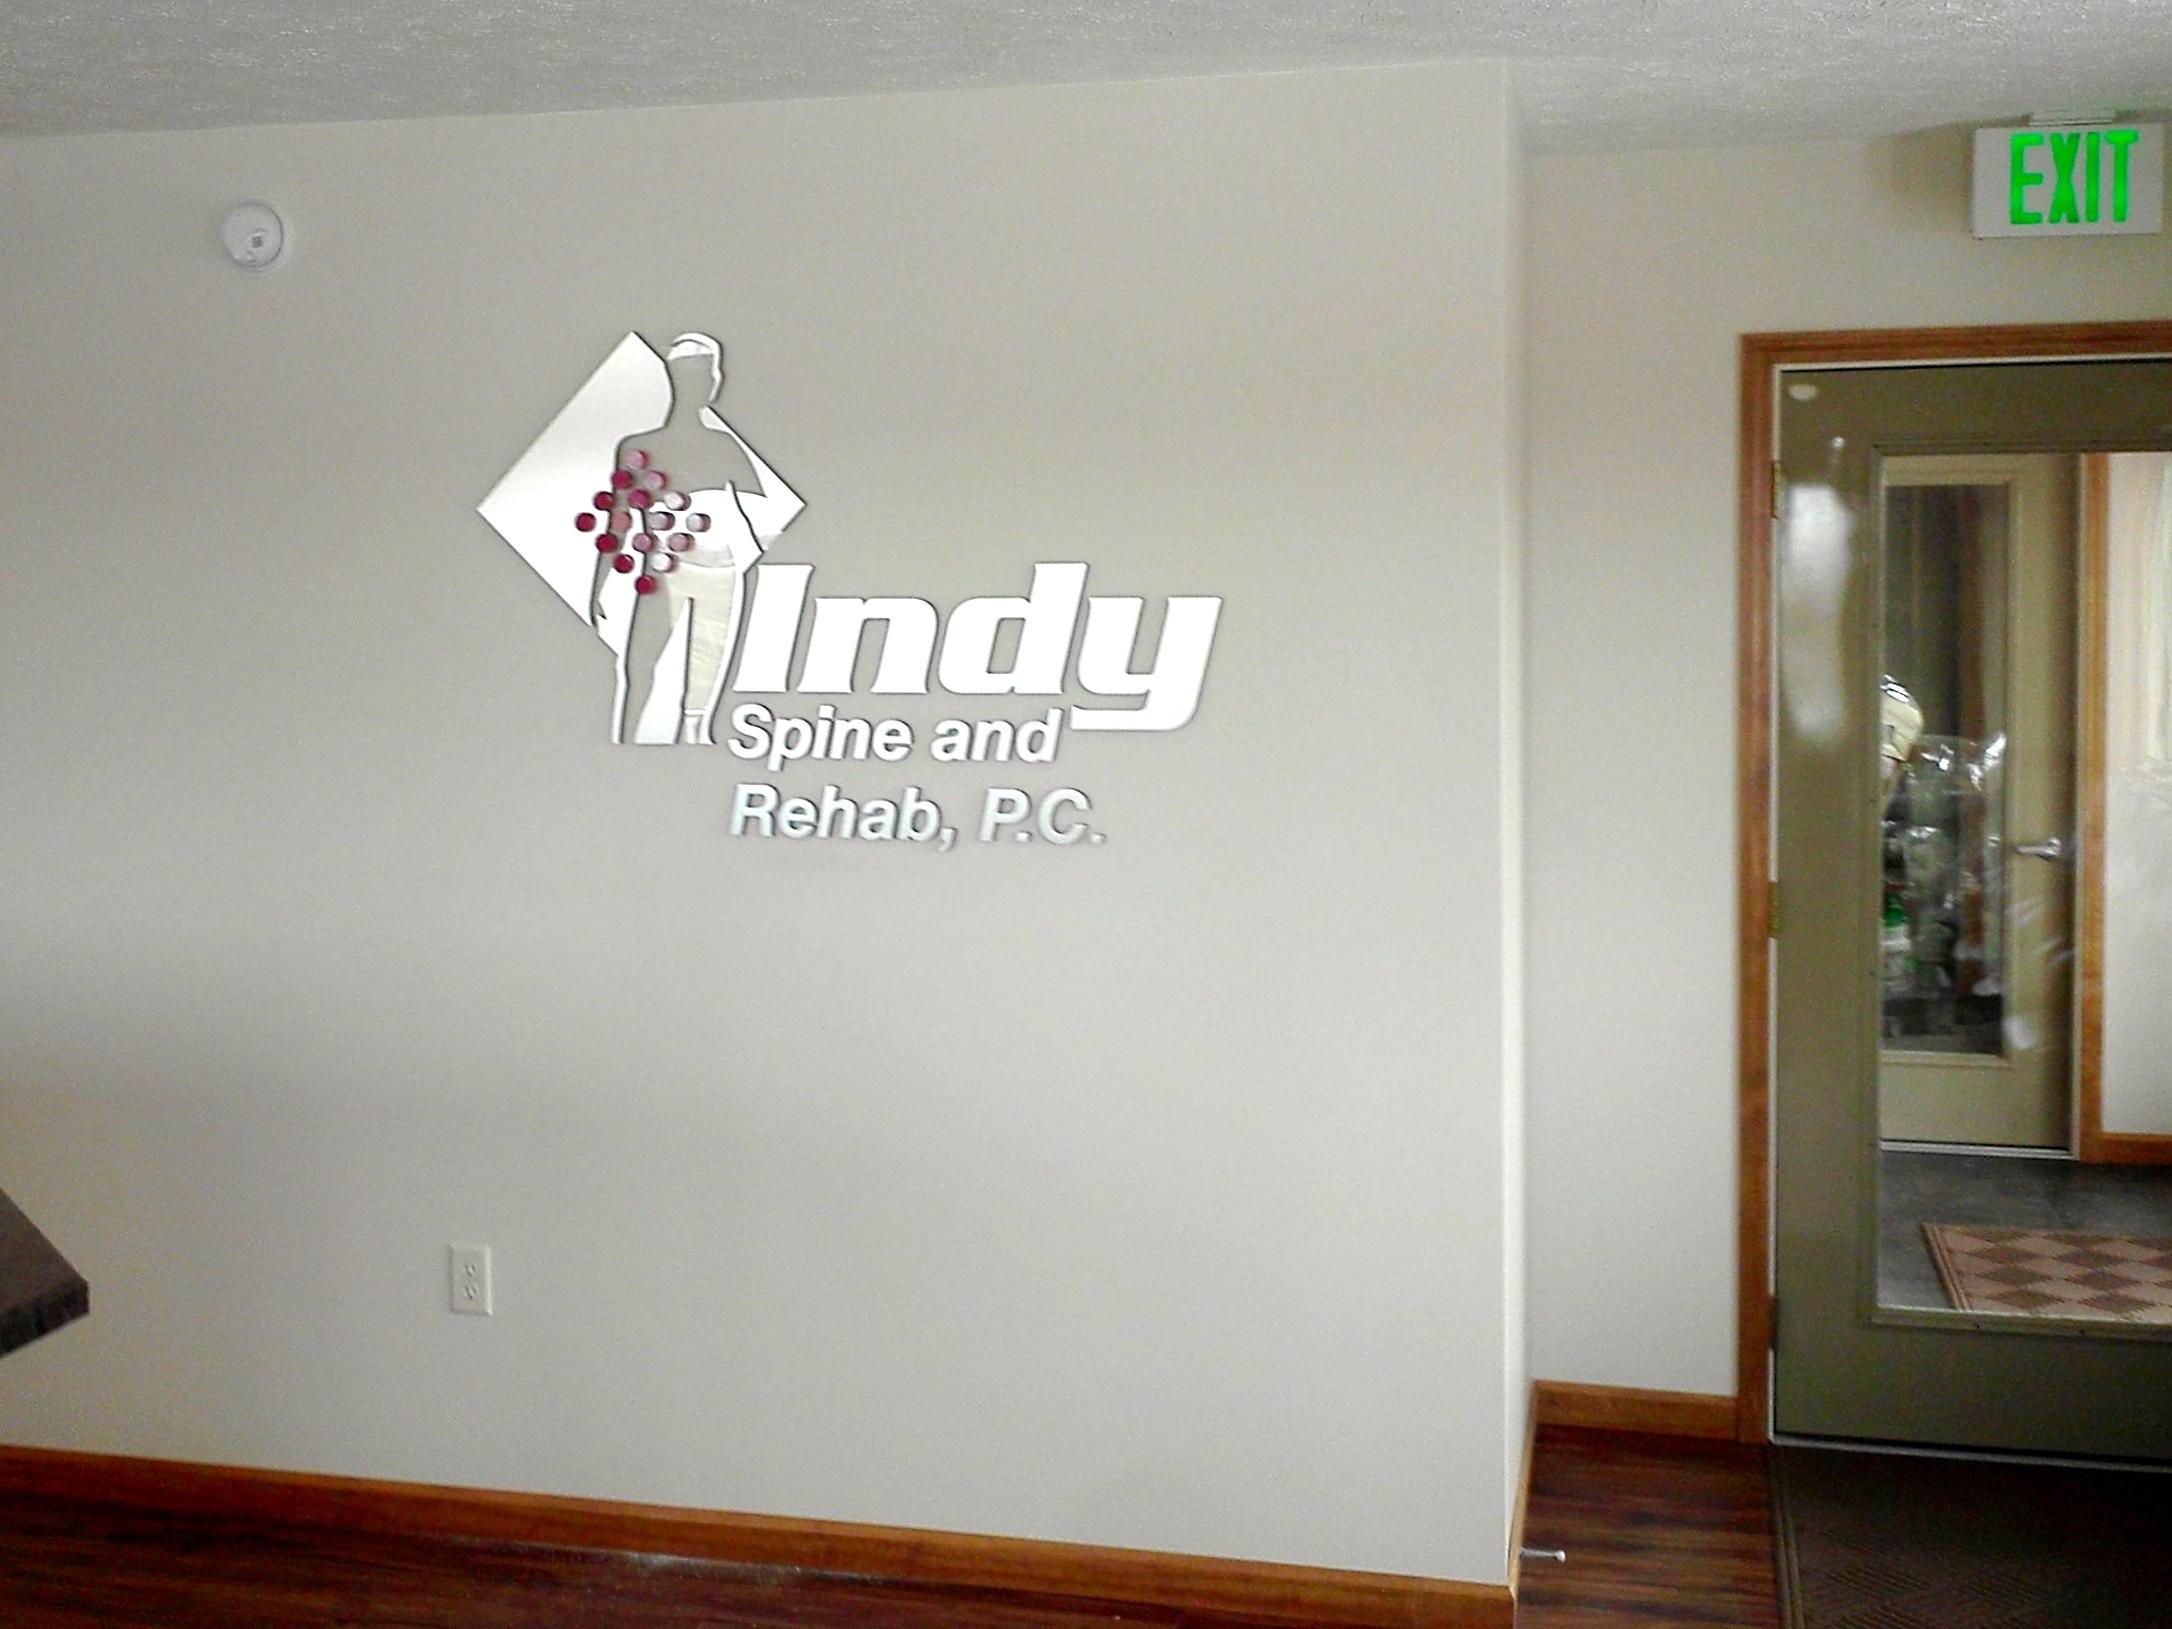 Interior Dimensional Letters Wall Logo for Indy Spine and Rehab